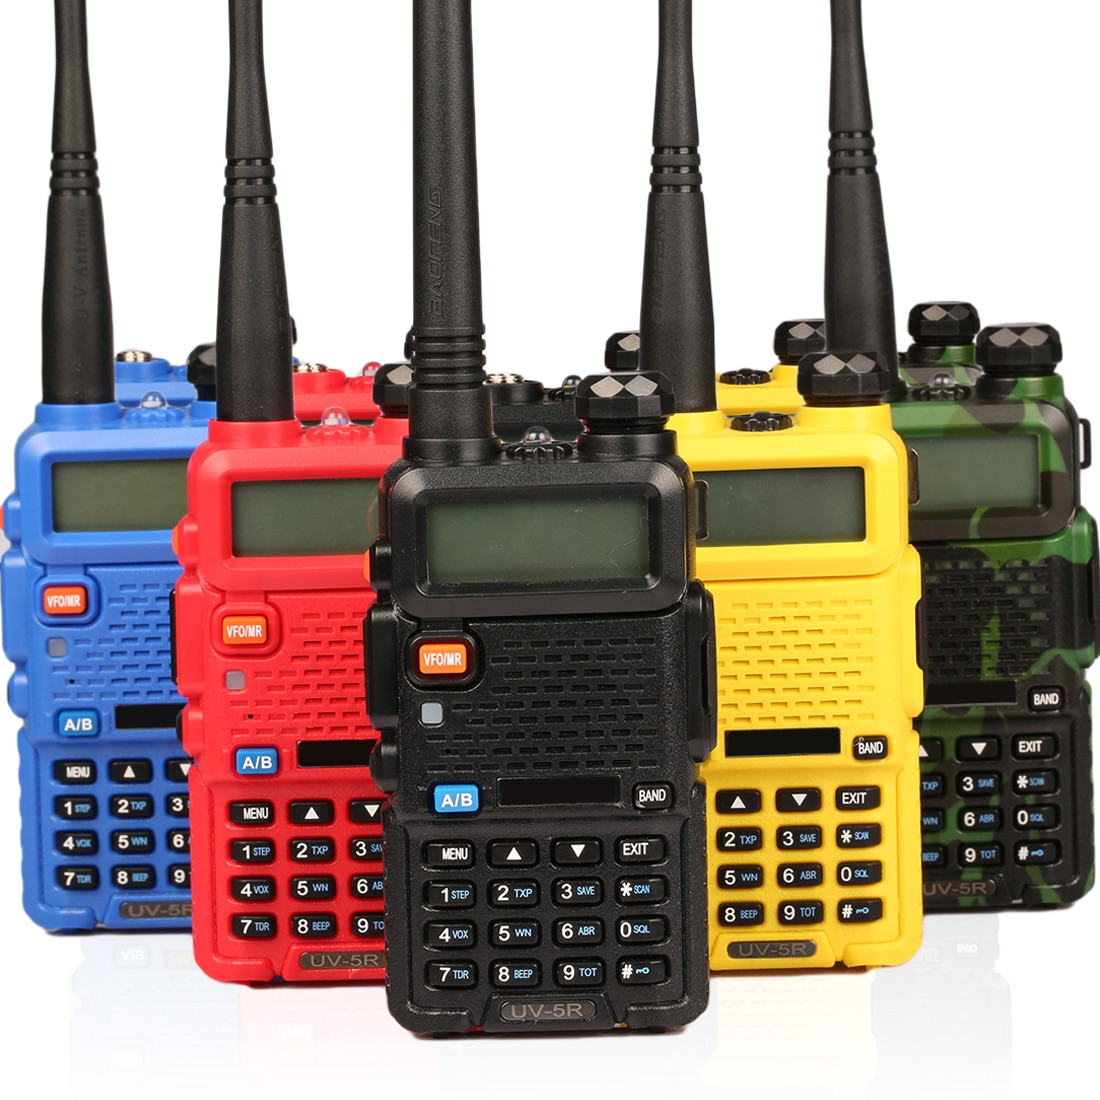 Walkie Talkie Ham Radio Comunicador Hf Transceiver Radio Scanner Two Way Radio Walkie Talkie